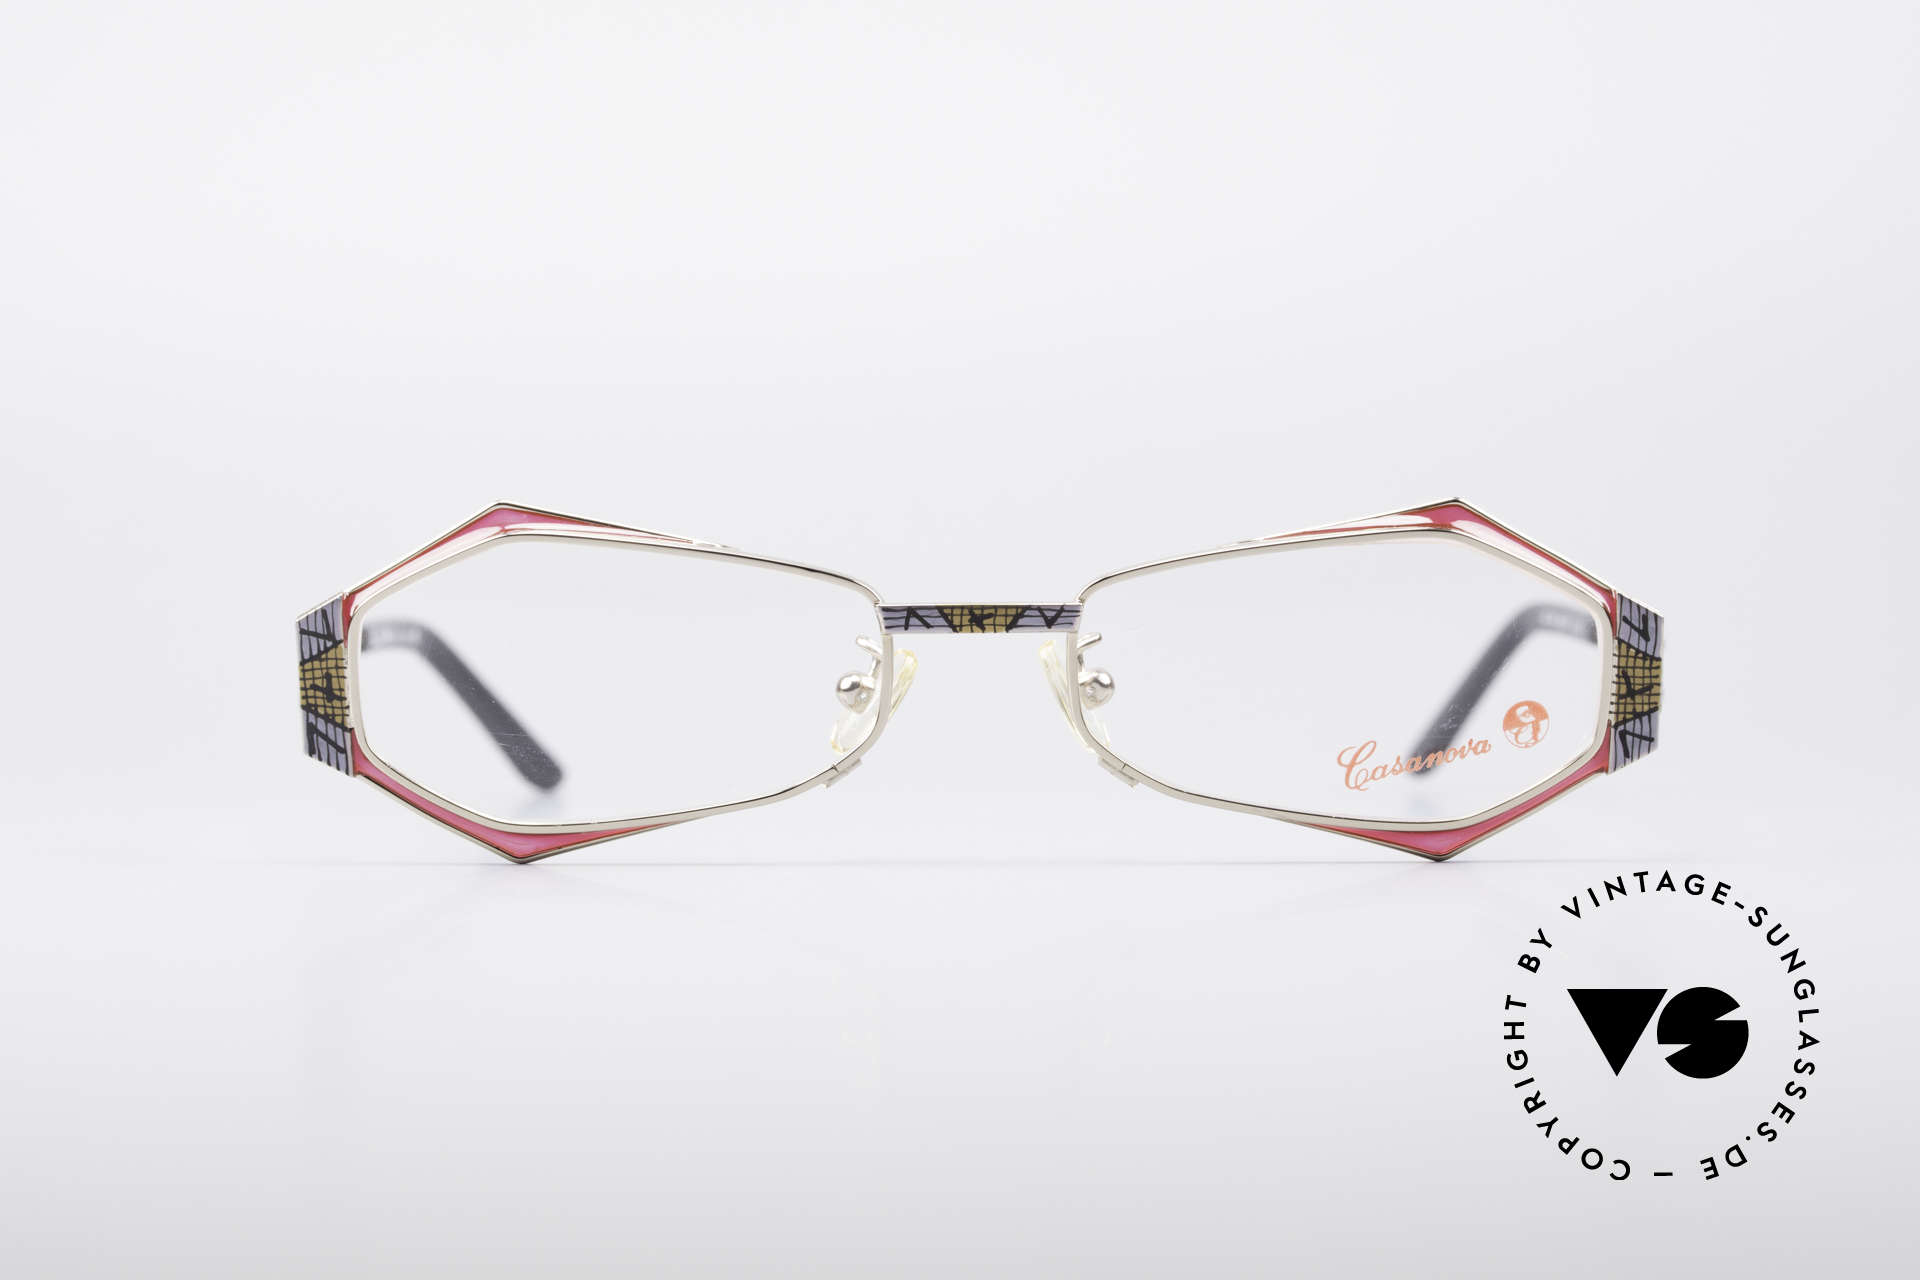 Casanova LC54 Ladies Vintage Frame, fantastic combination of colors, pattern and shapes, Made for Women